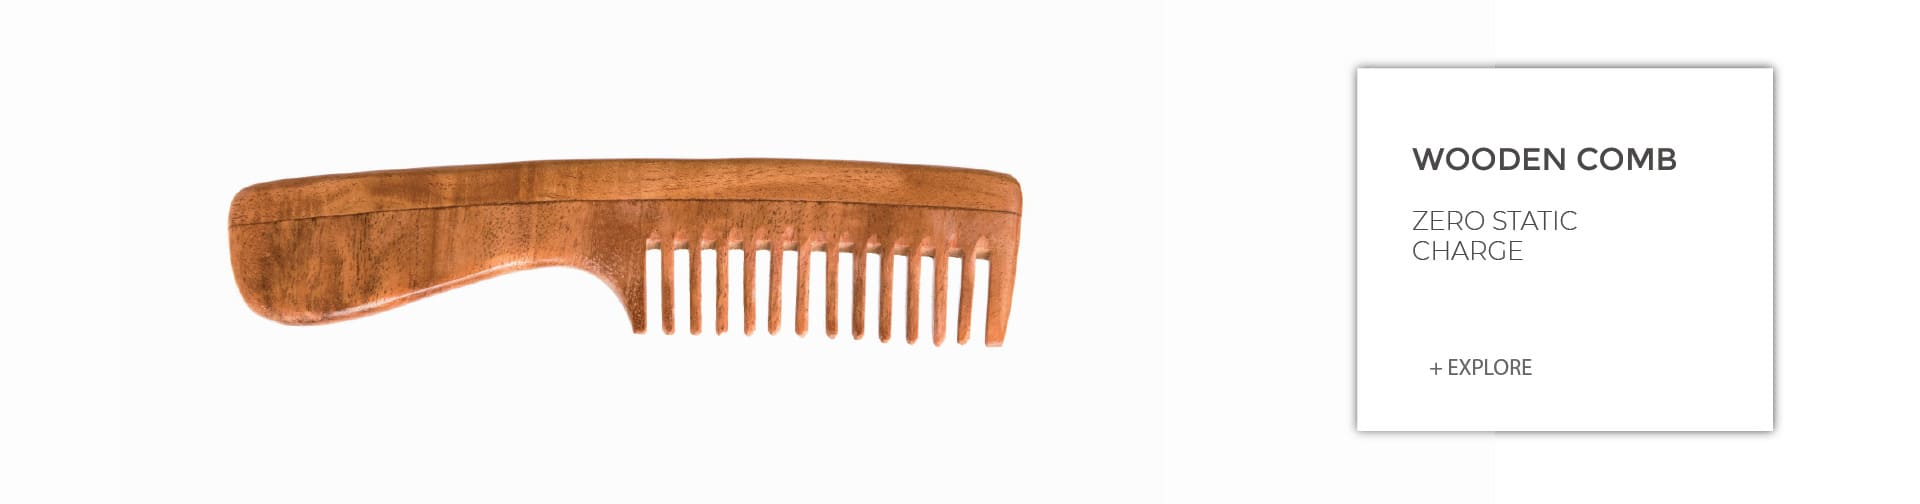 Main_Slider-WoodenComb_eComp